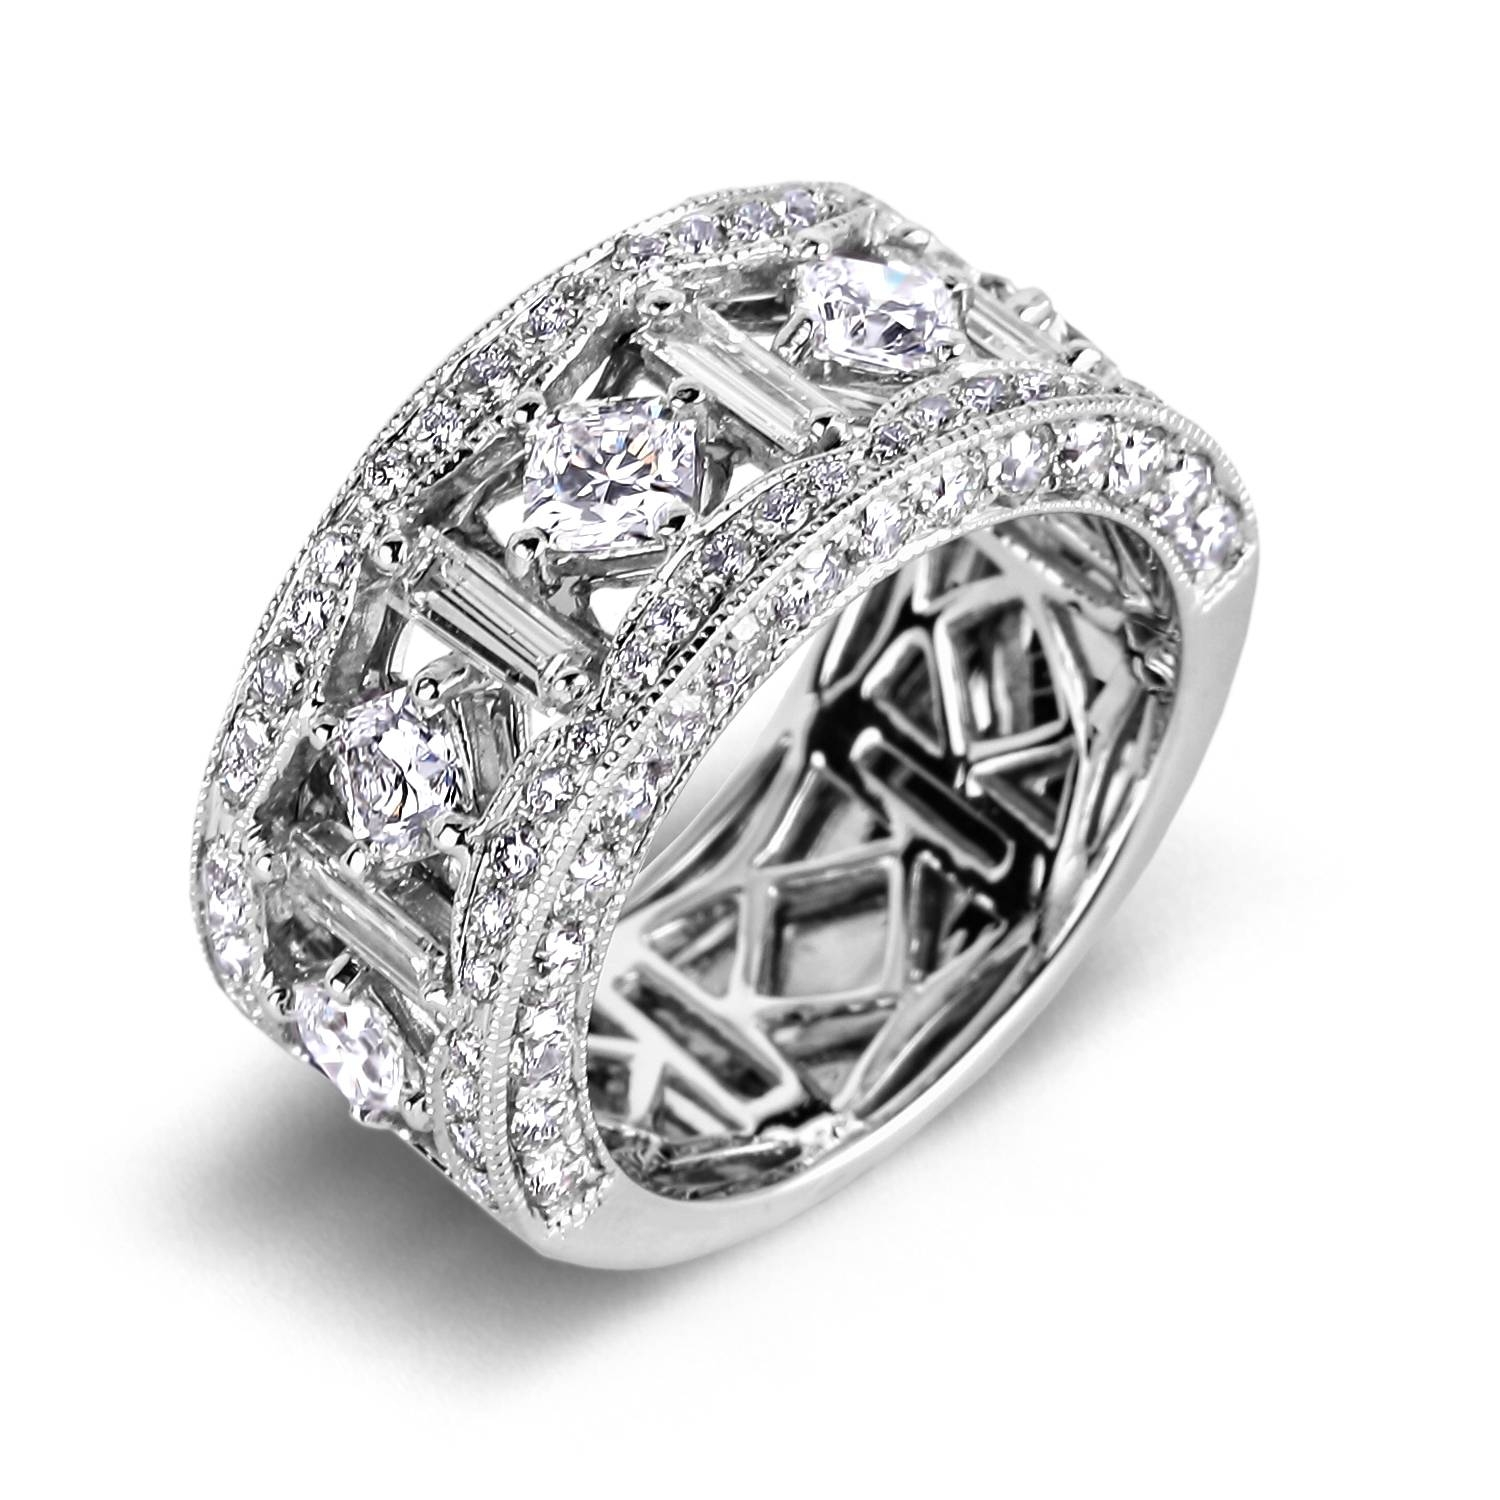 Wedding Anniversary Rings For Her | Wedding Ideas For Most Recent Diamond Anniversary Rings For Women (View 20 of 25)